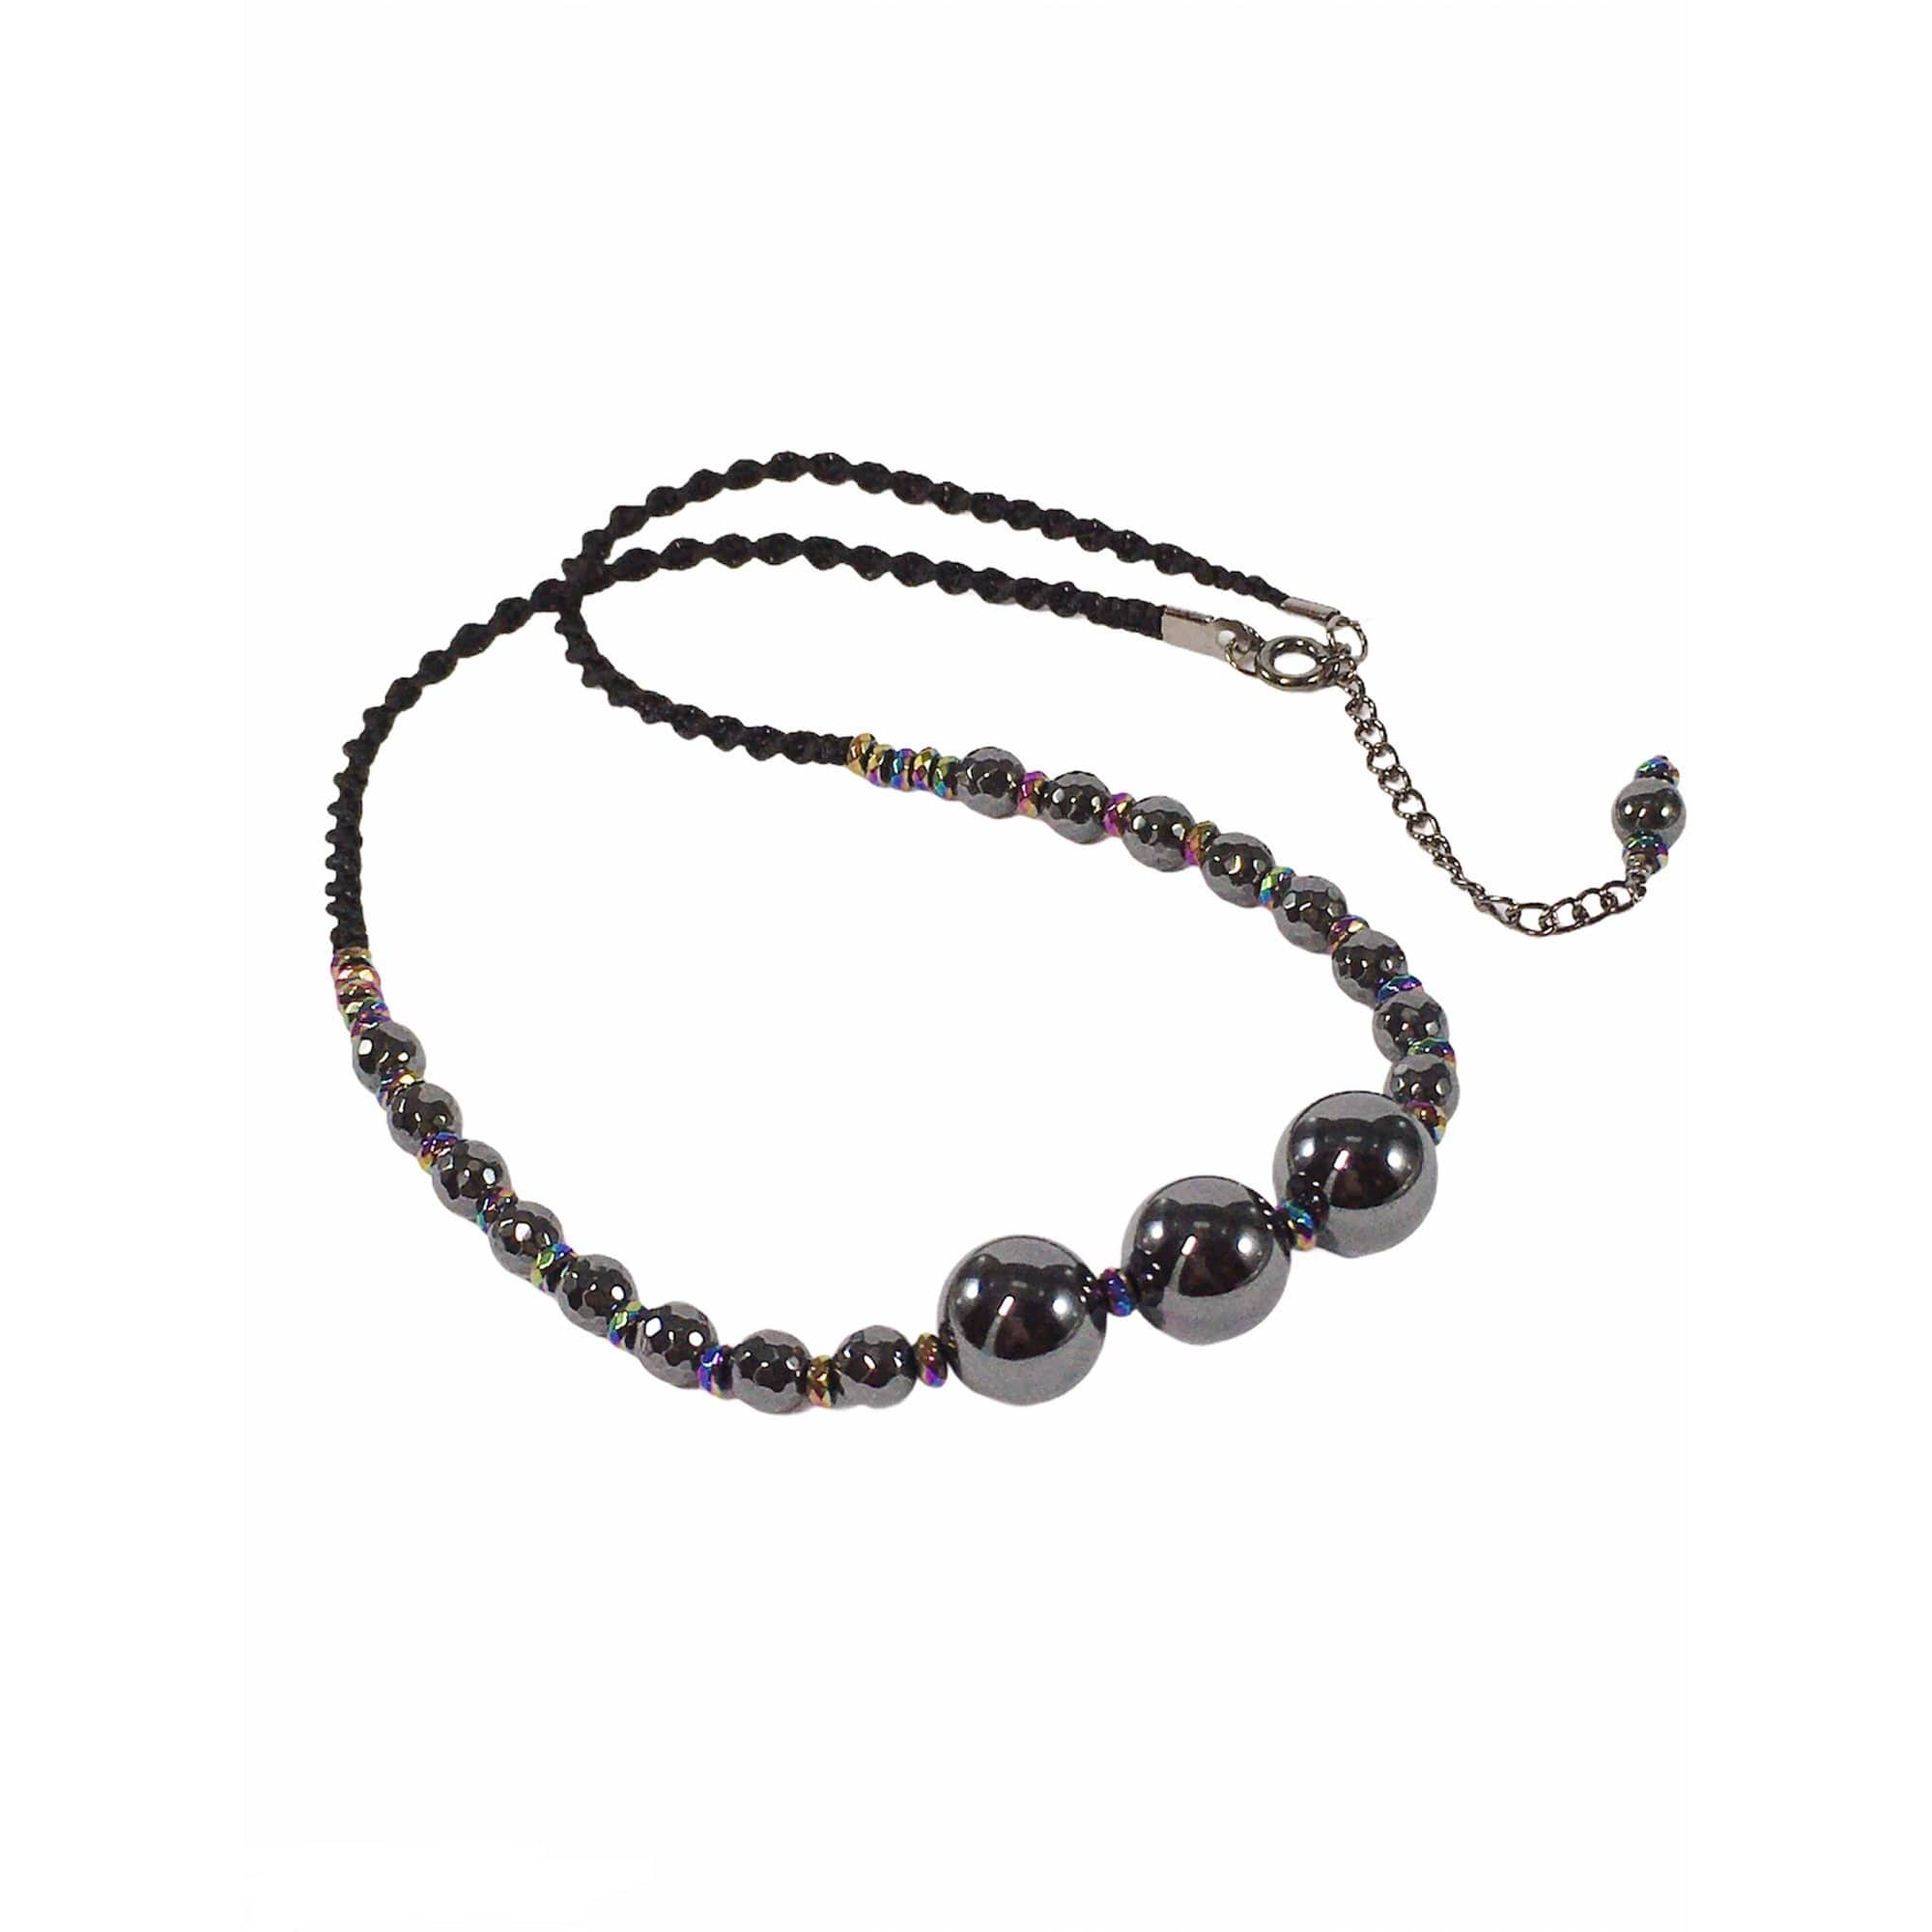 Handmade Hematite Gemstone Macrame Necklace